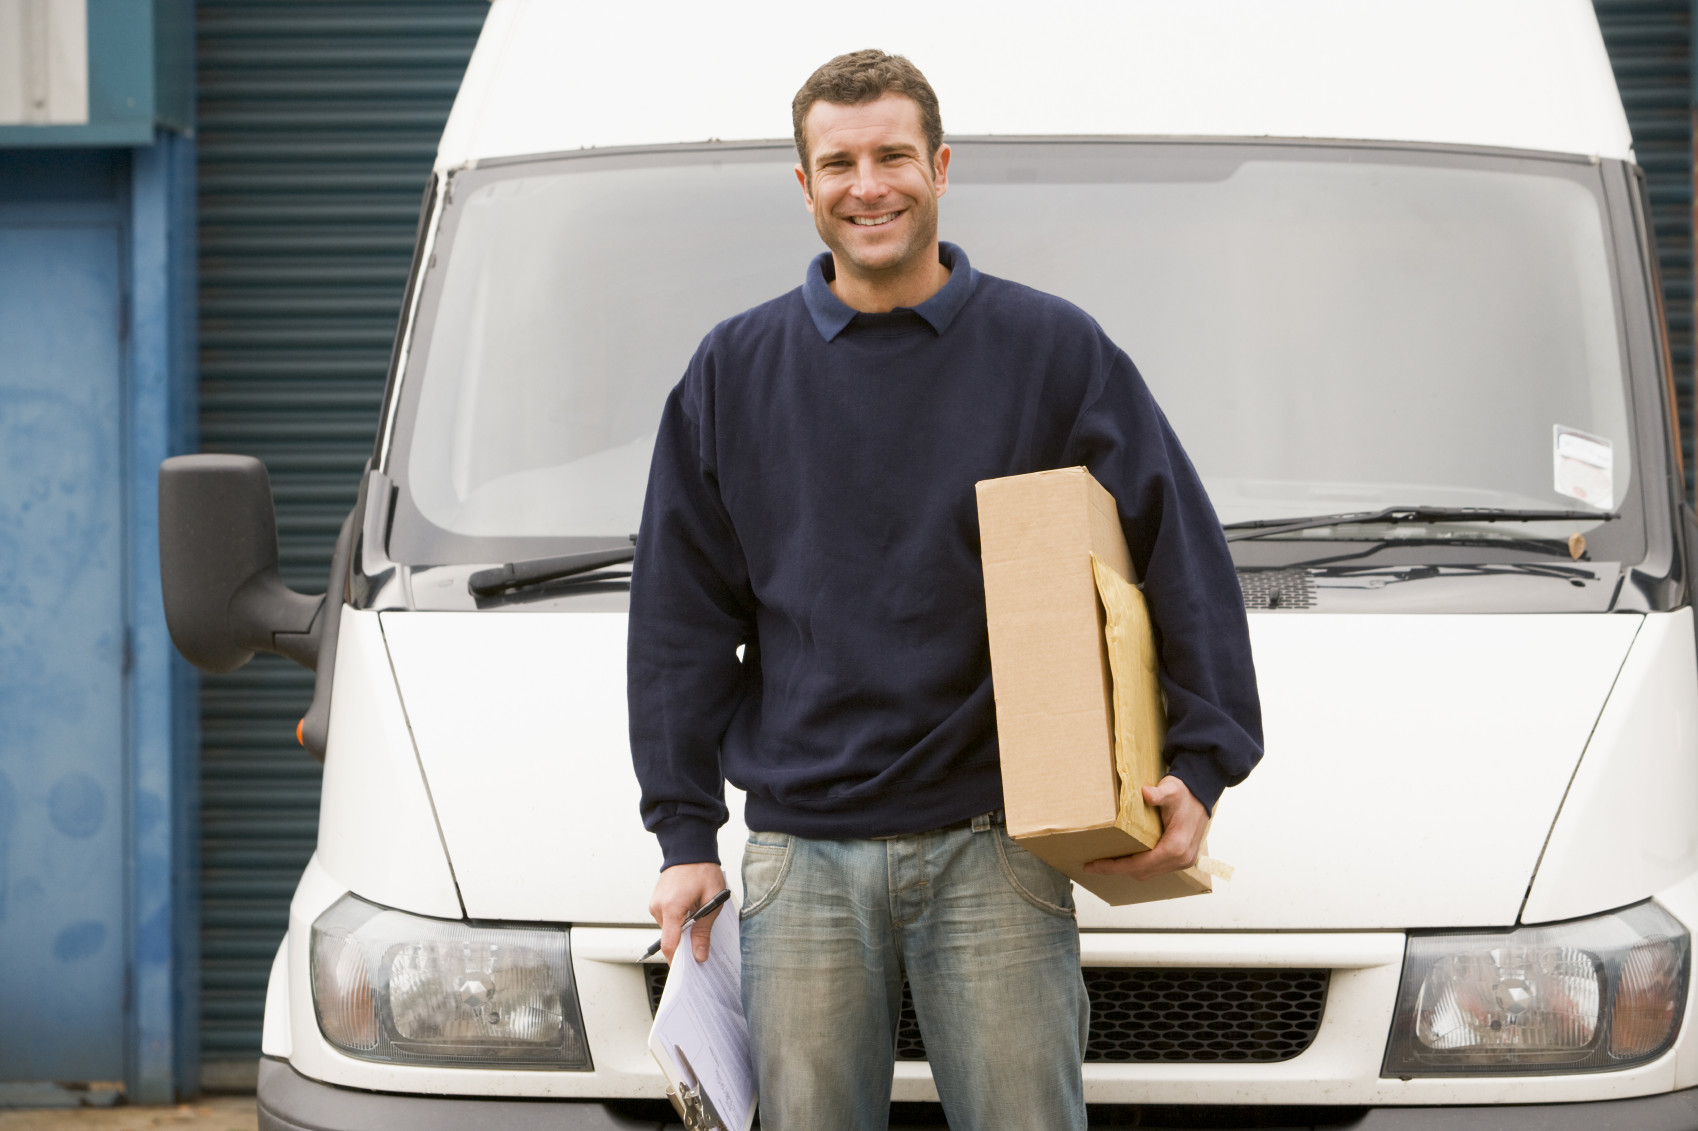 How to start a courier business or courier service